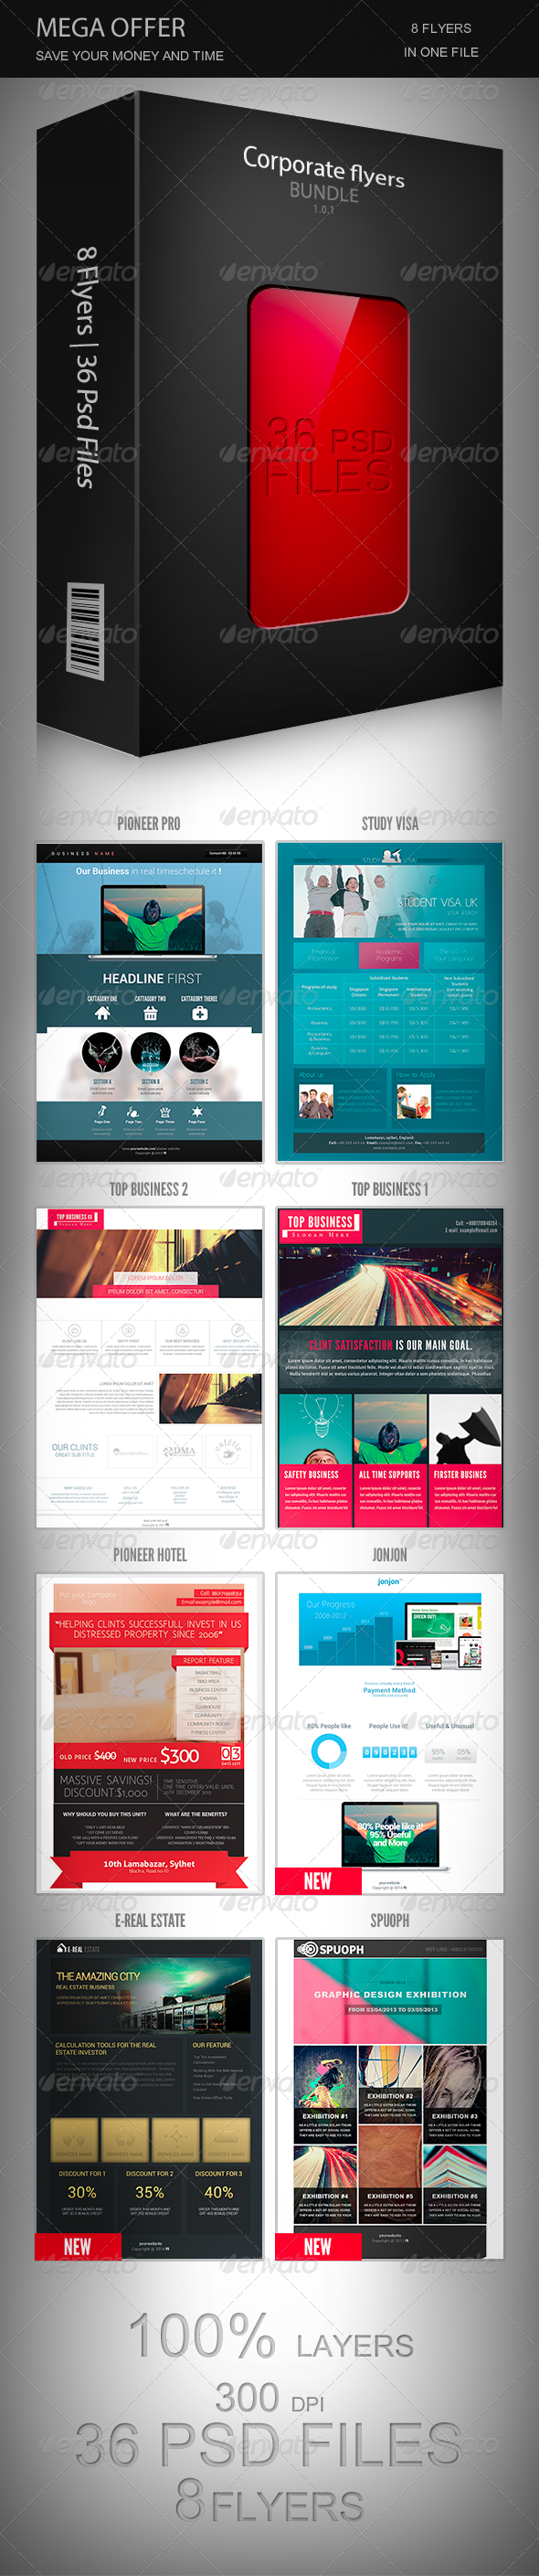 GraphicRiver Corporate Flyers Bundle 1.0.1 7213205